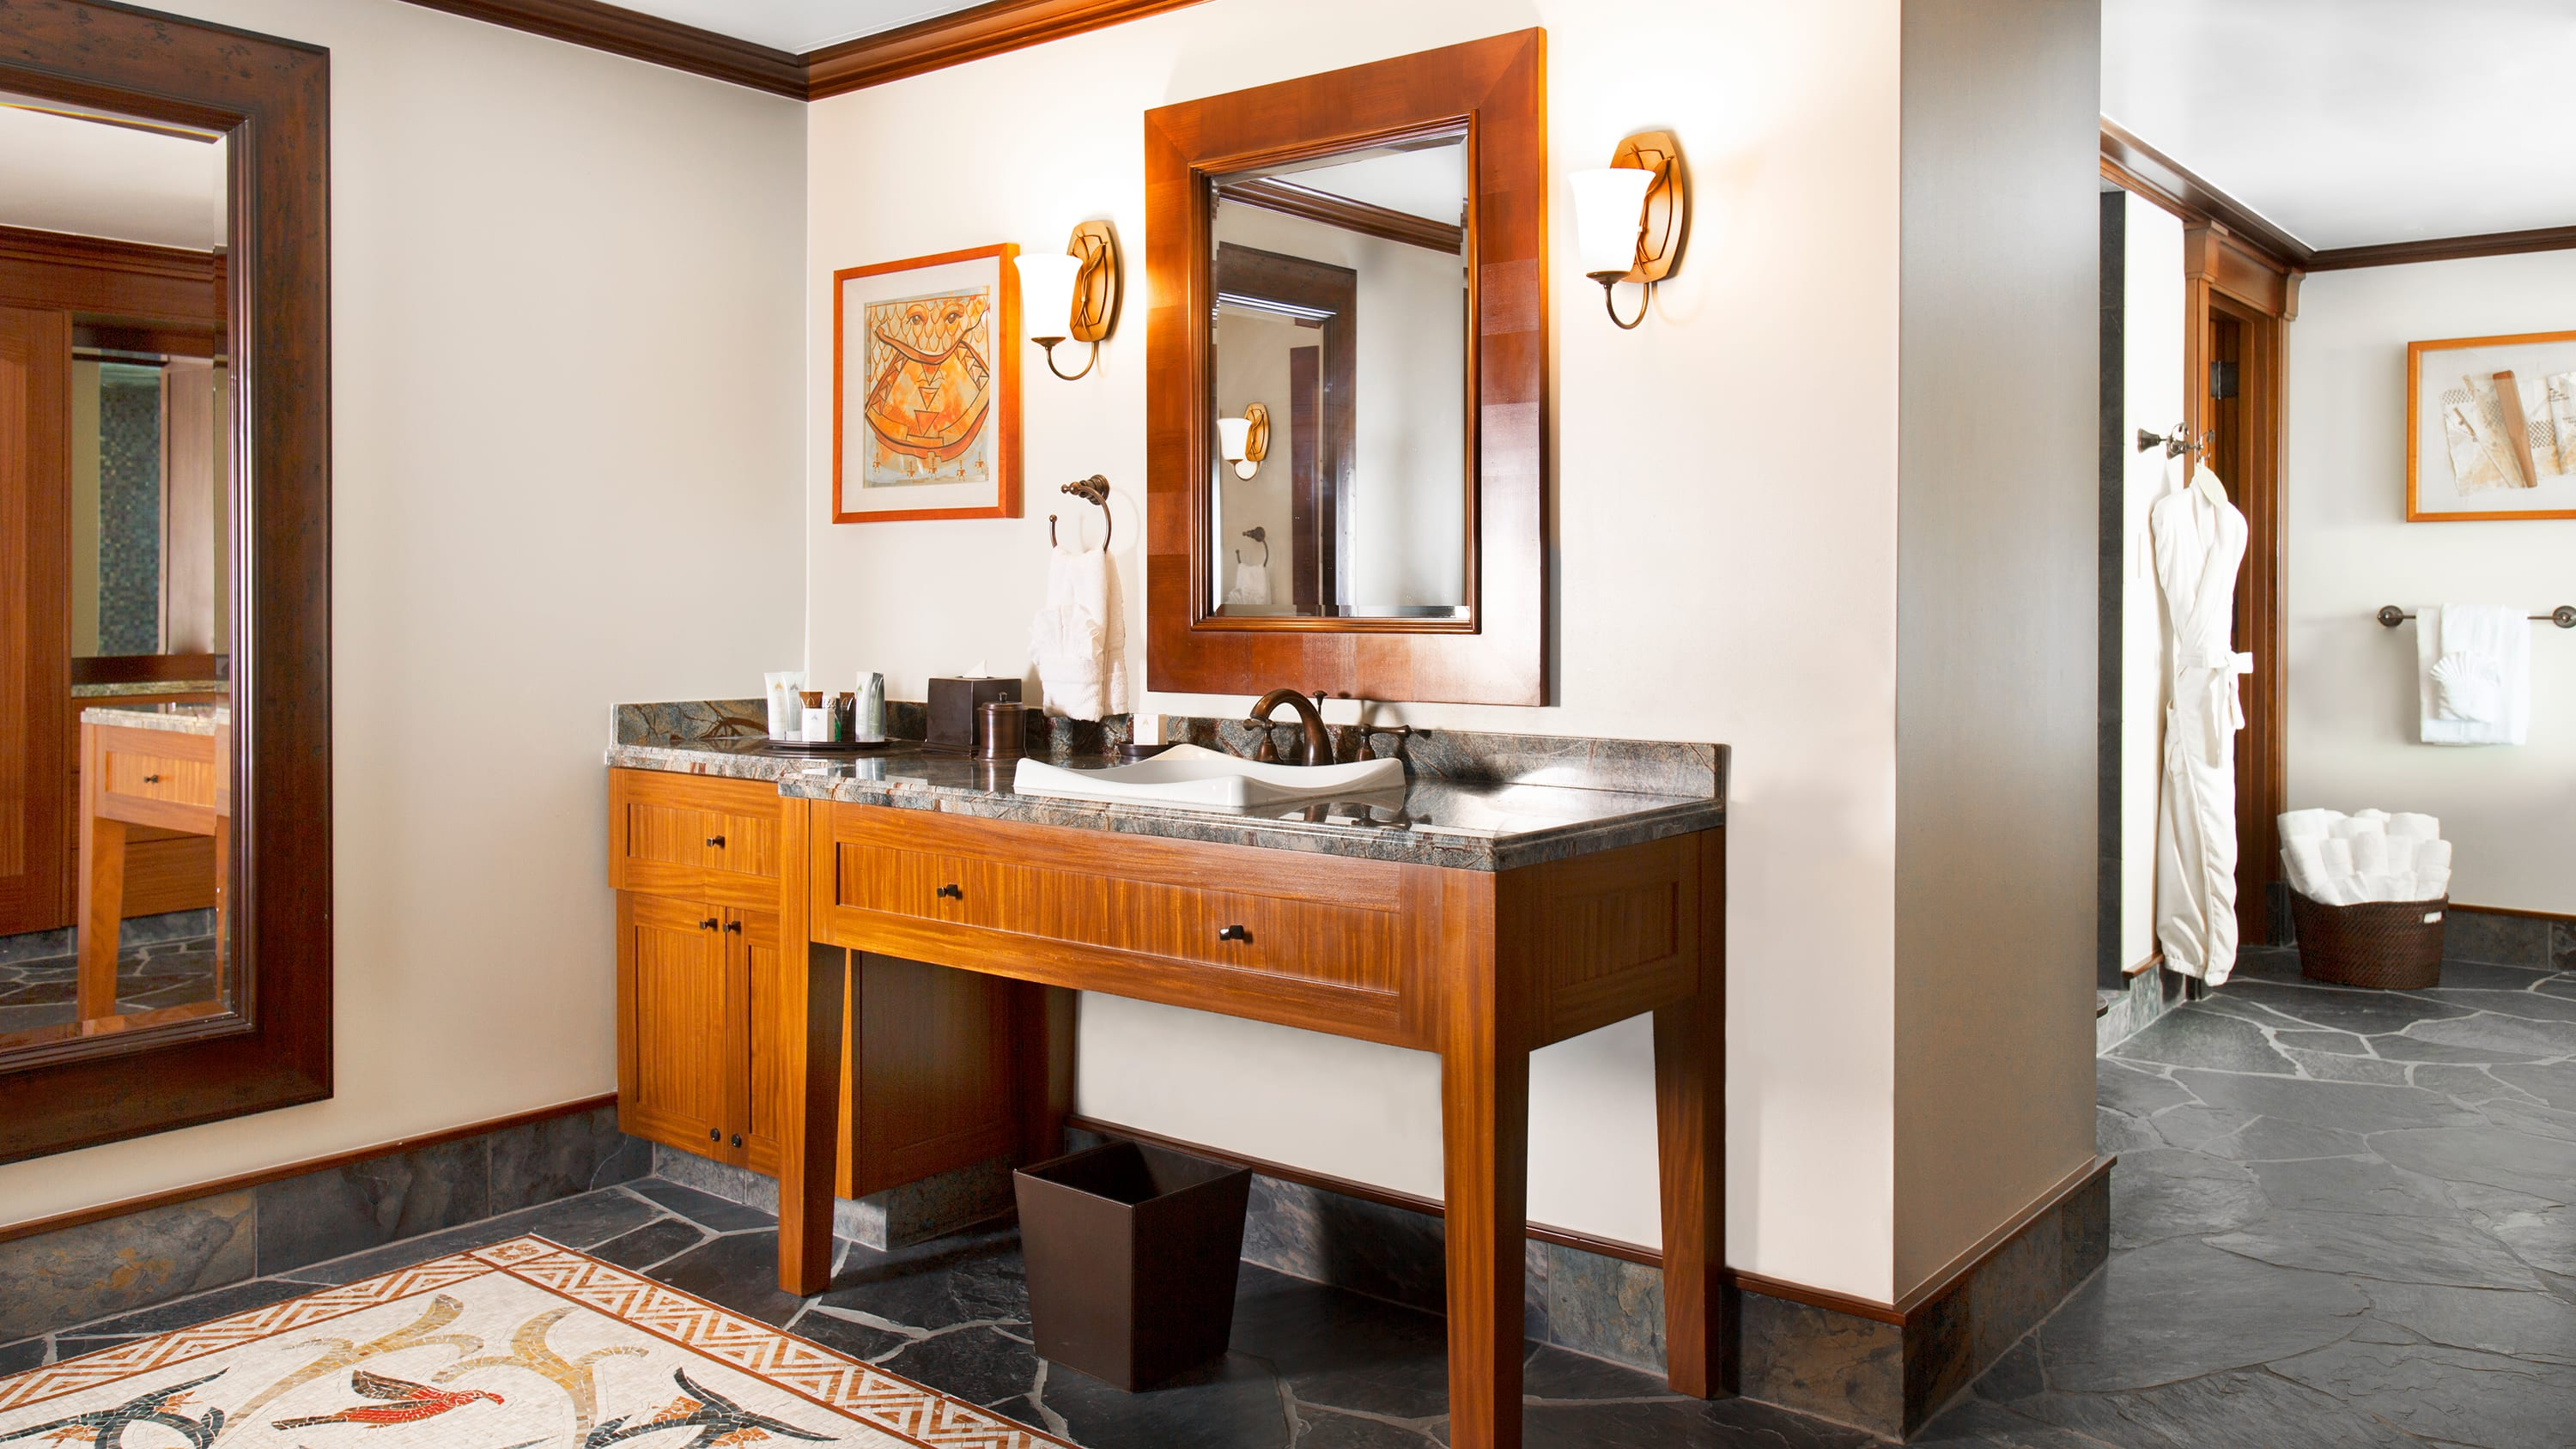 A bathroom area with a sink, towels, a mirror and toiletries near a robe